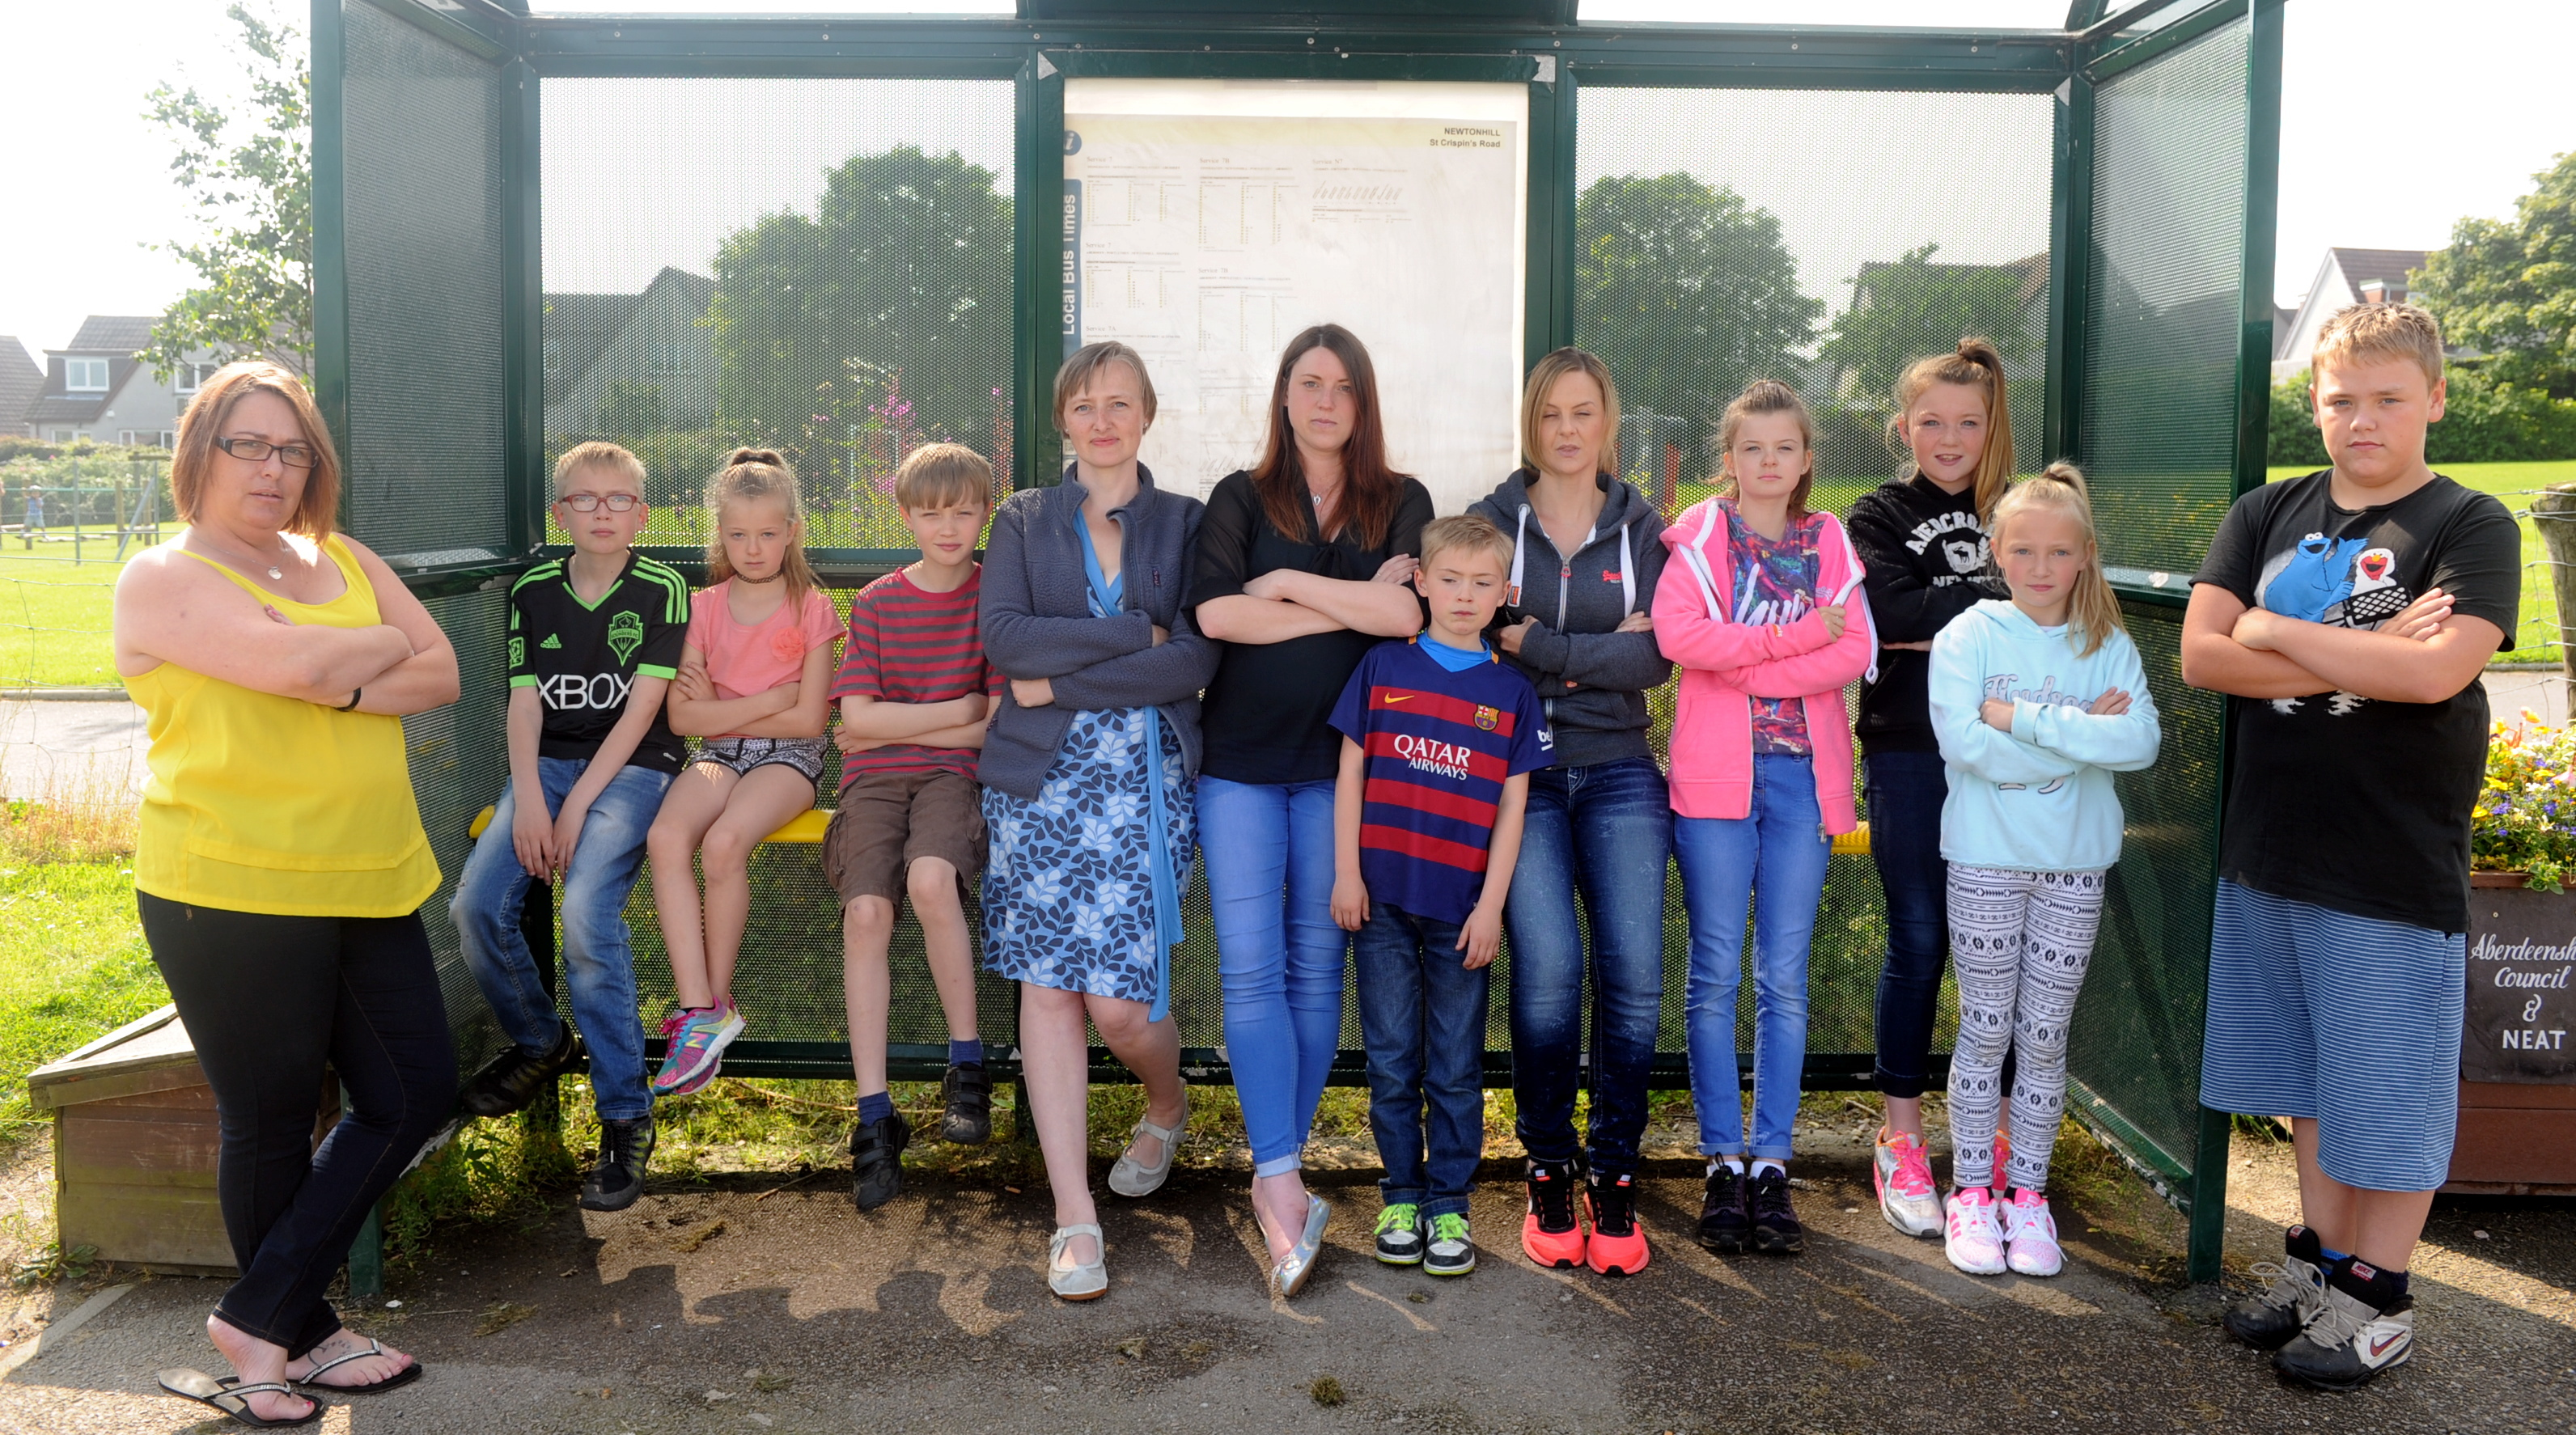 From left, Lee Erskine, Lucas Convery, 12, Macey Hadingham, 8, Euan Russell, 8, Mags Russell, Lisa Convery, Miller Convery, 8, Jill Hadingham, Bethany Hadingham, 12, Lauren Ellis, 12, Vilte Norwood, 9 and Chay Erskine, 12.